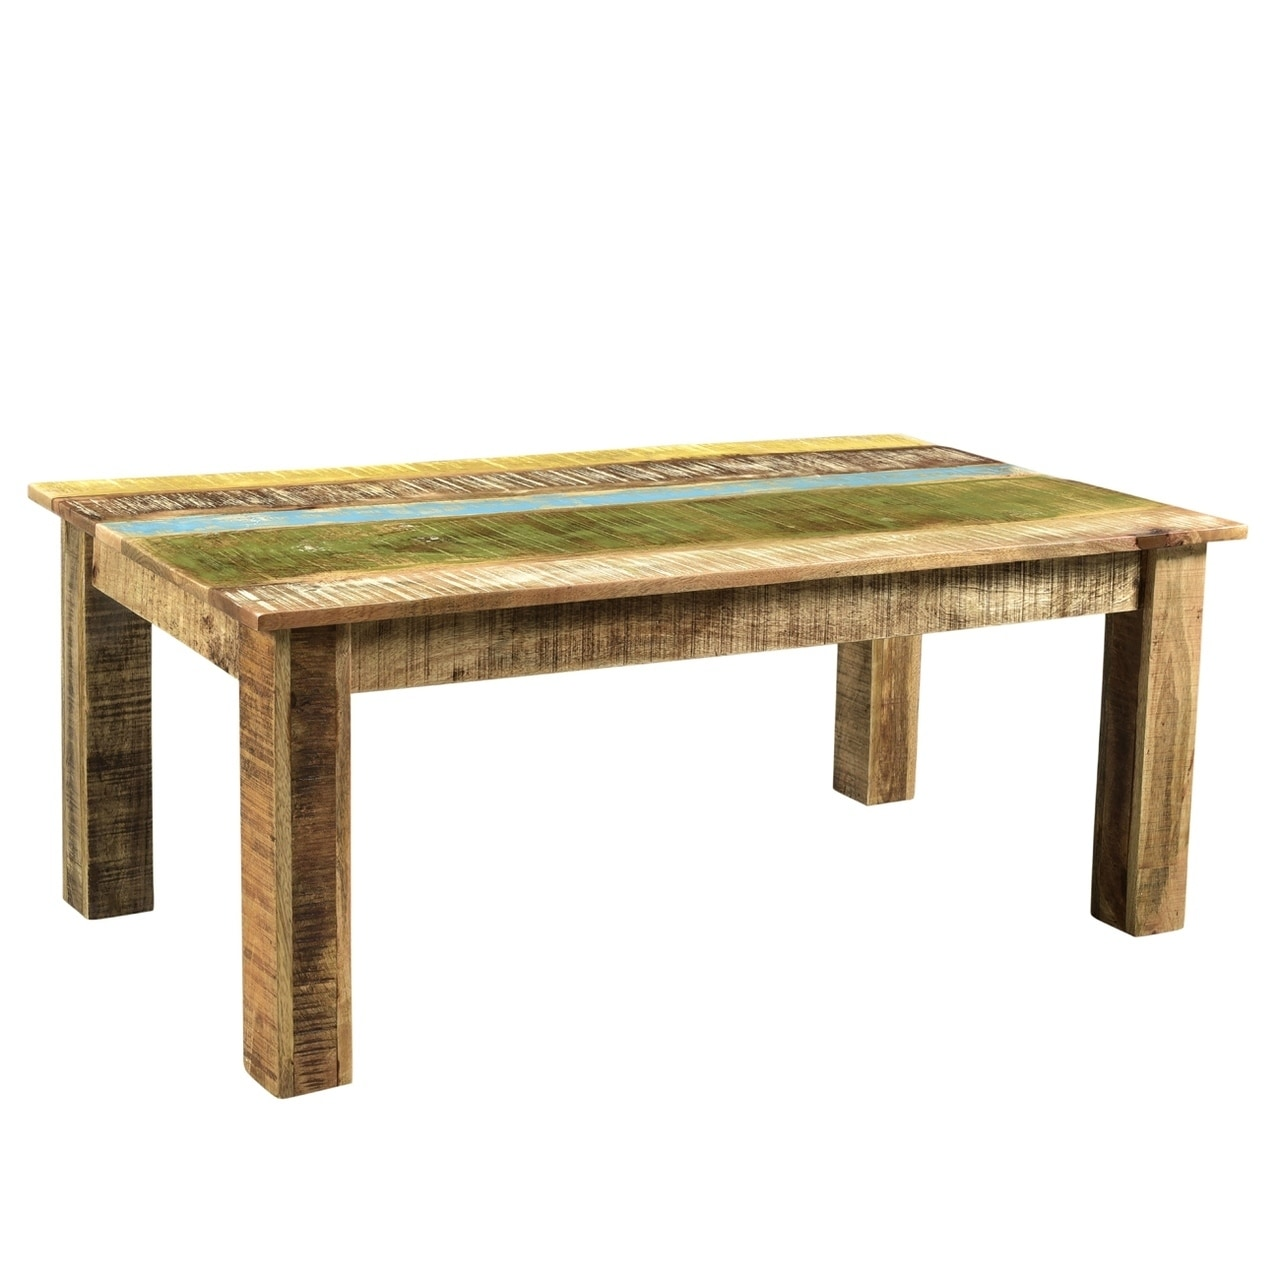 Solid Timber Coffee Table Timbergirl Suman Solid Mango Wood Coffee Table 46